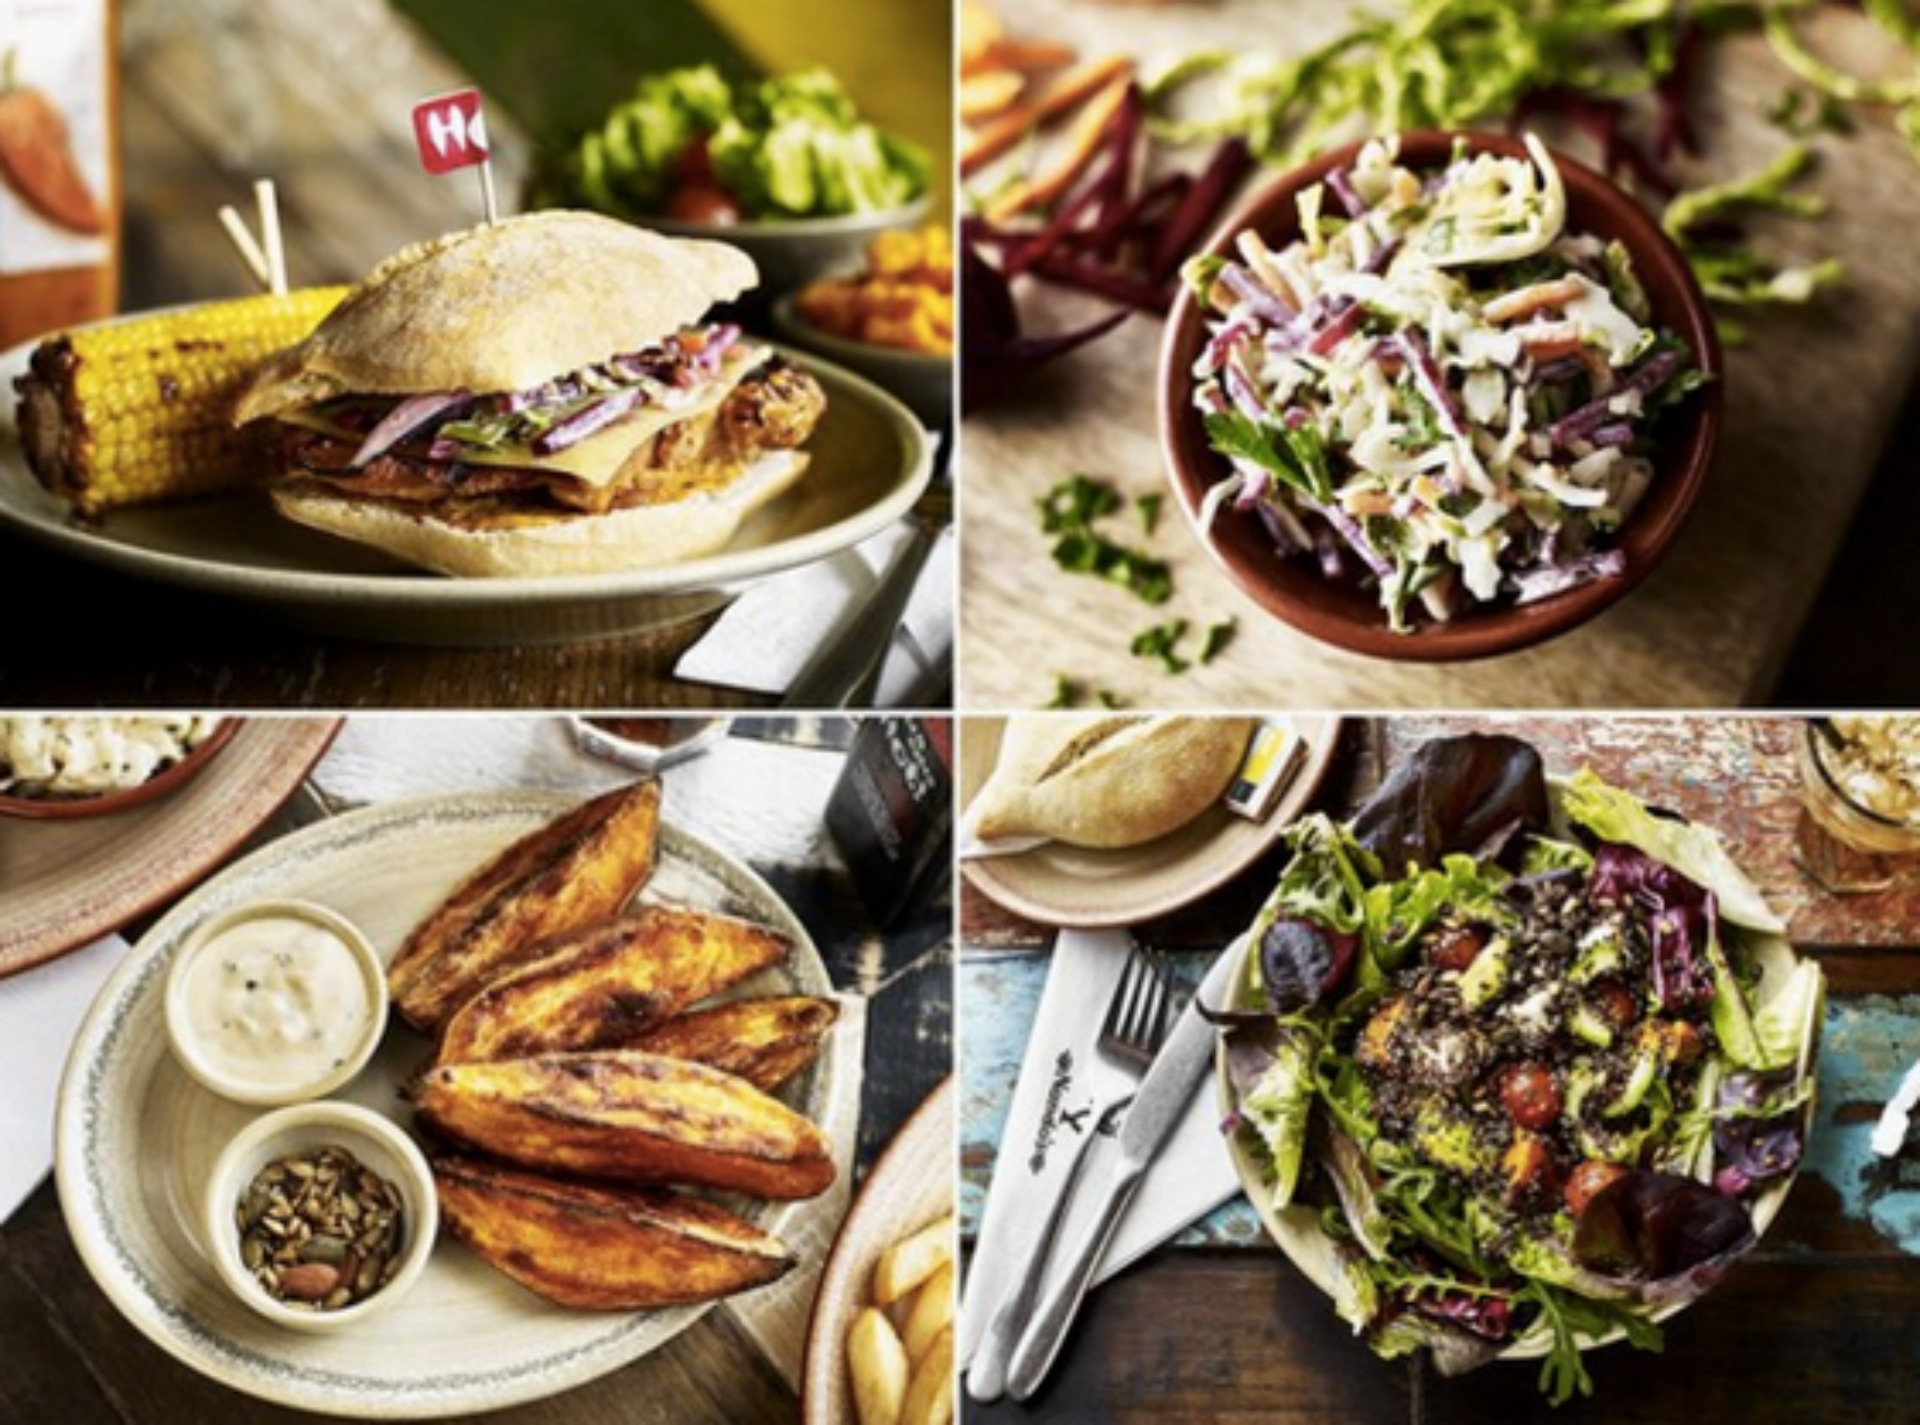 Nando's launches new menu with four new dishes